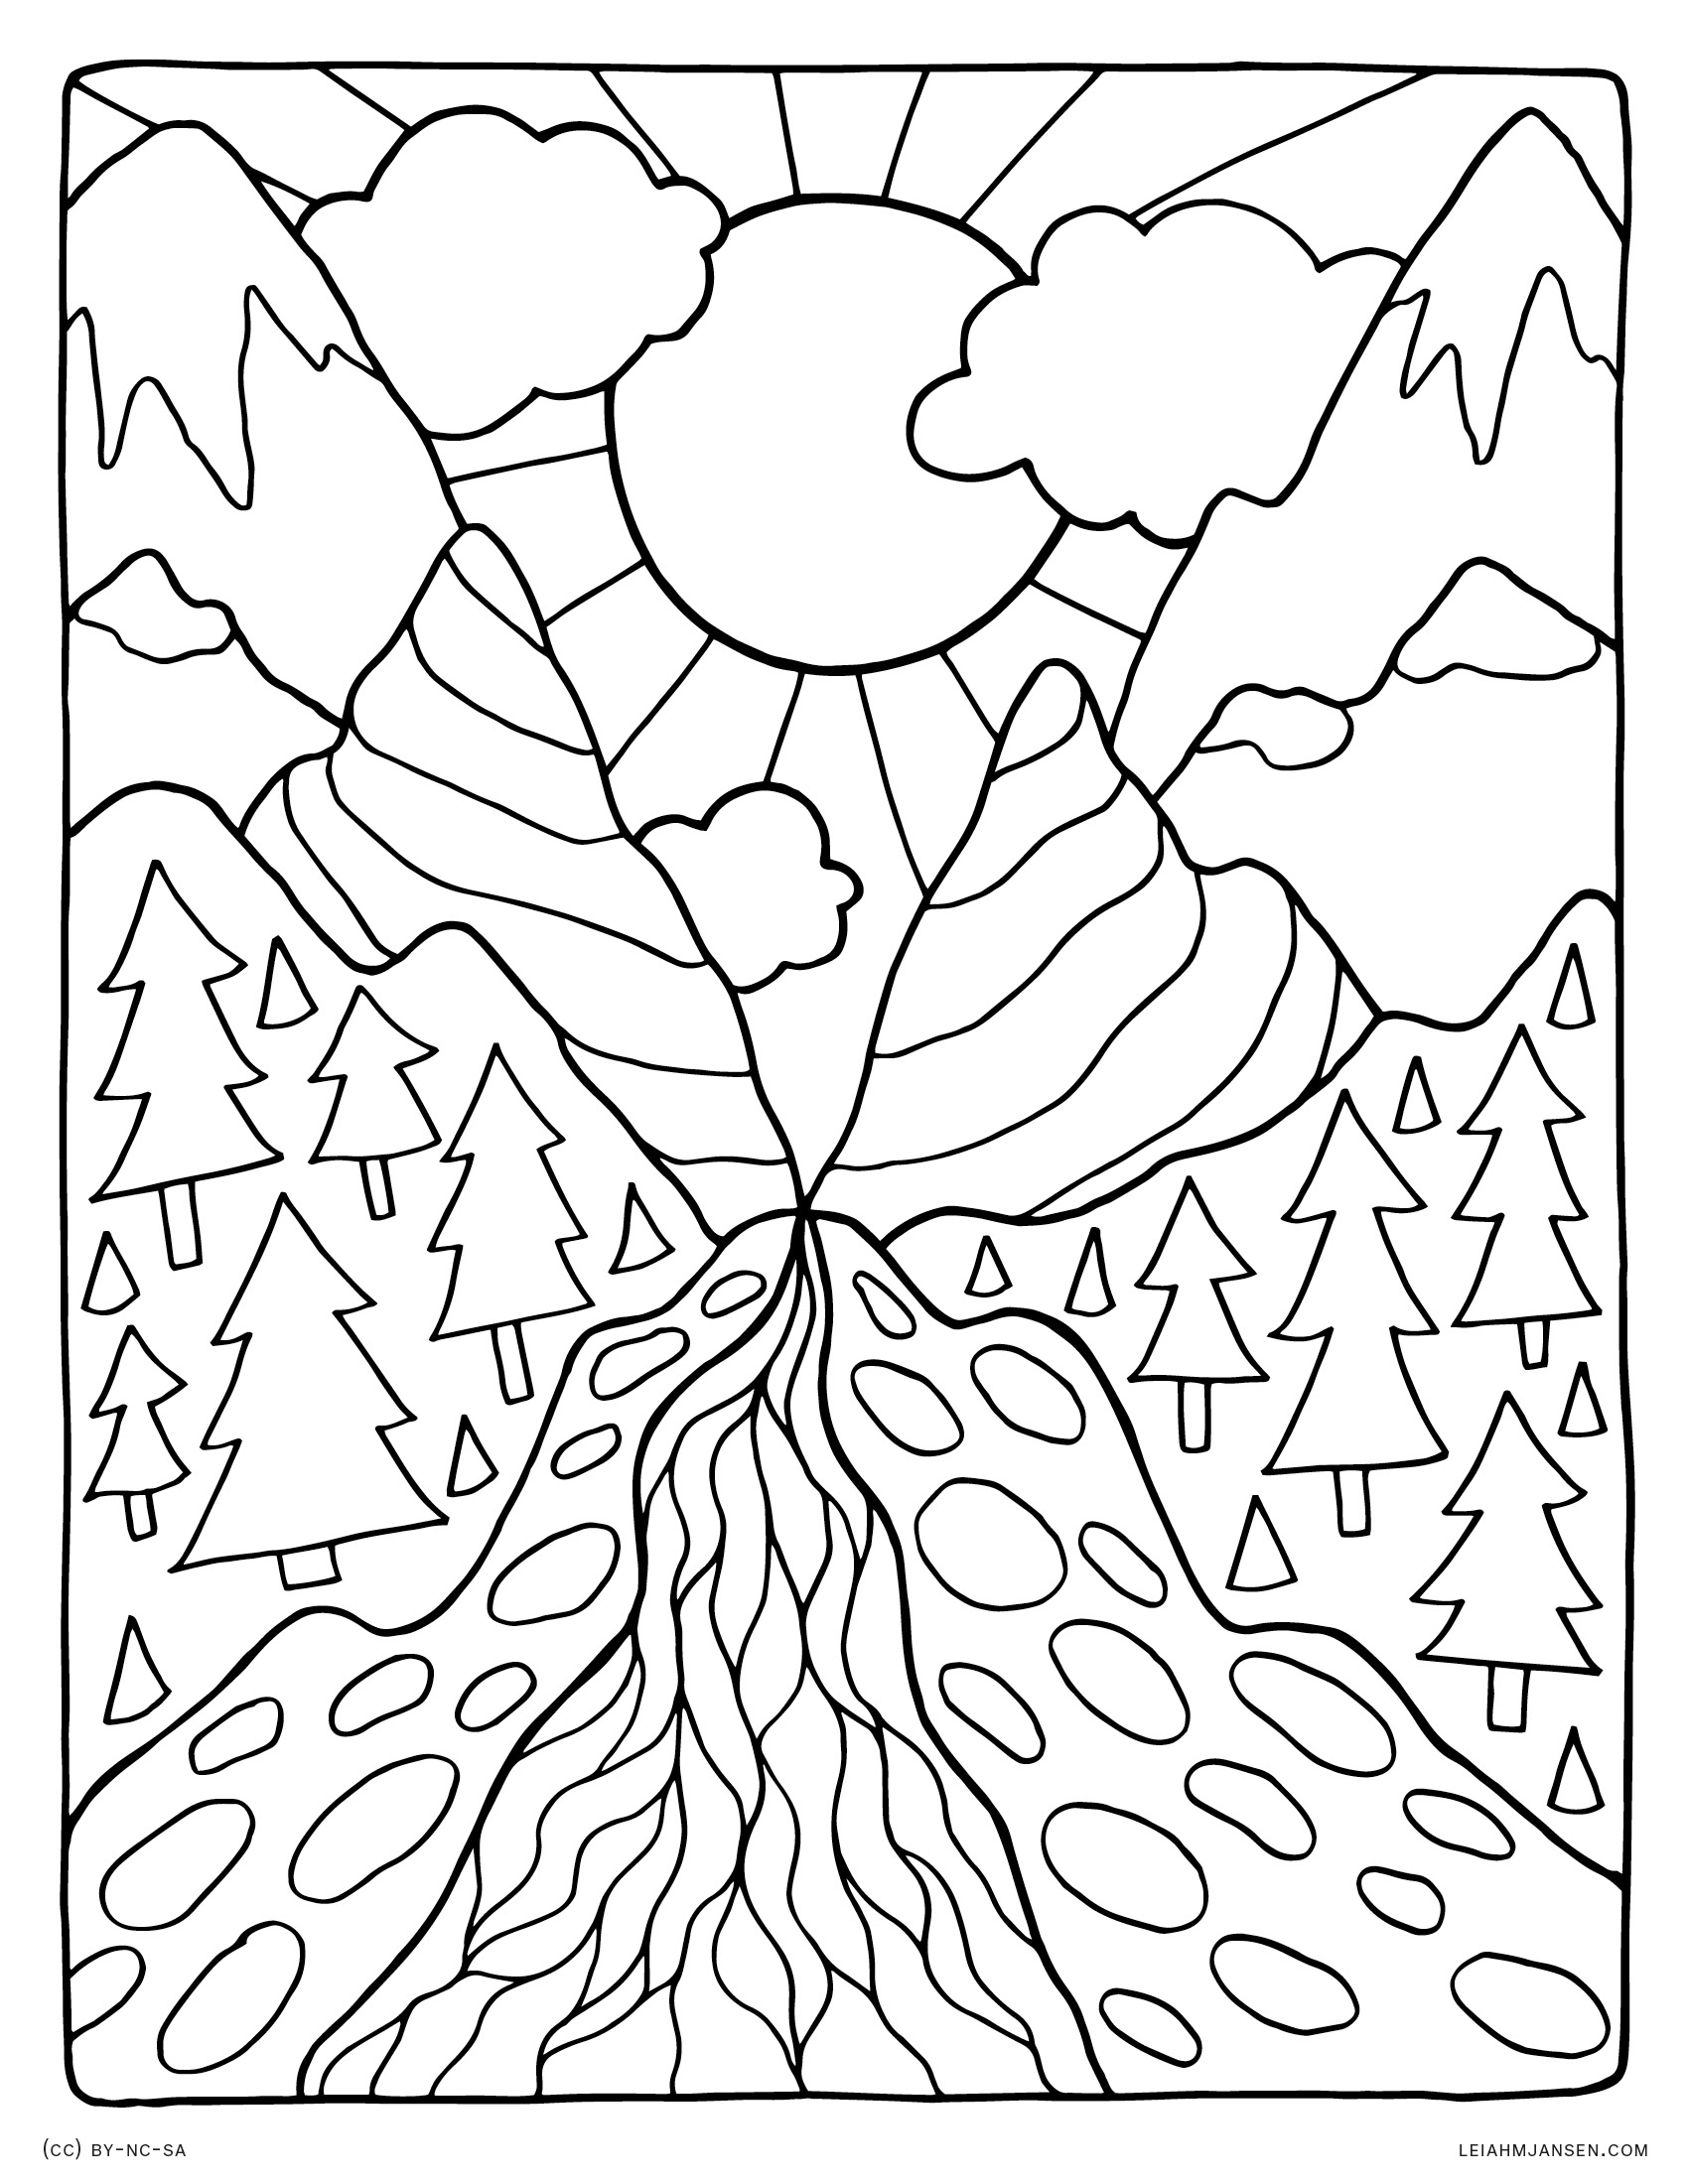 nature coloring pages for kids nature coloring pages for kids pages kids coloring for nature